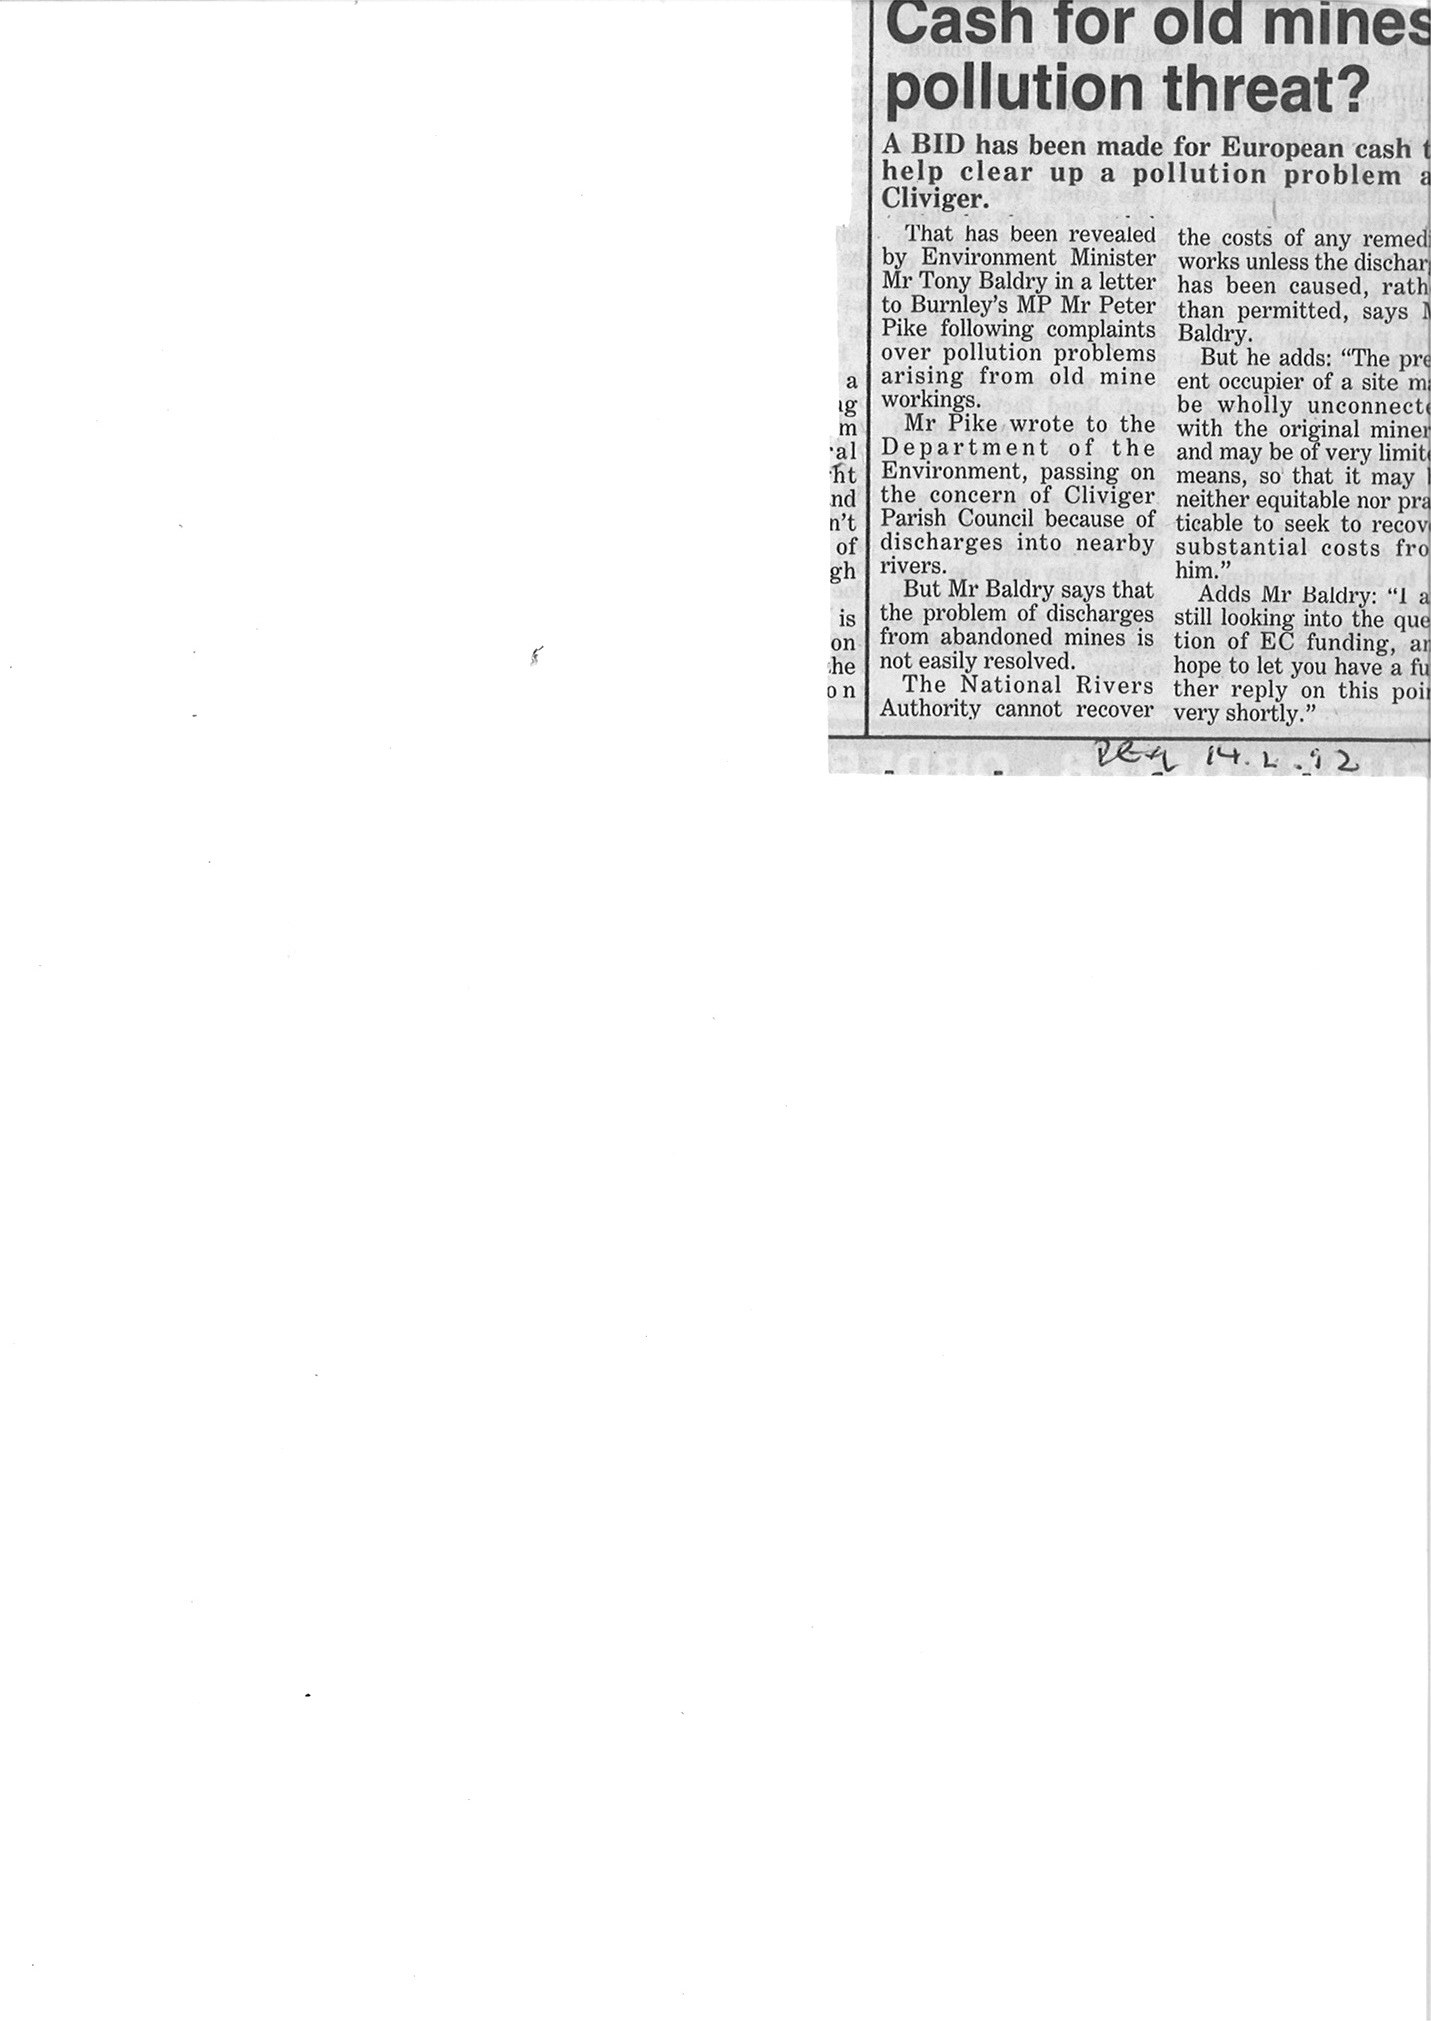 1992 Dec 14 Cash for old mines pollution threat.jpg